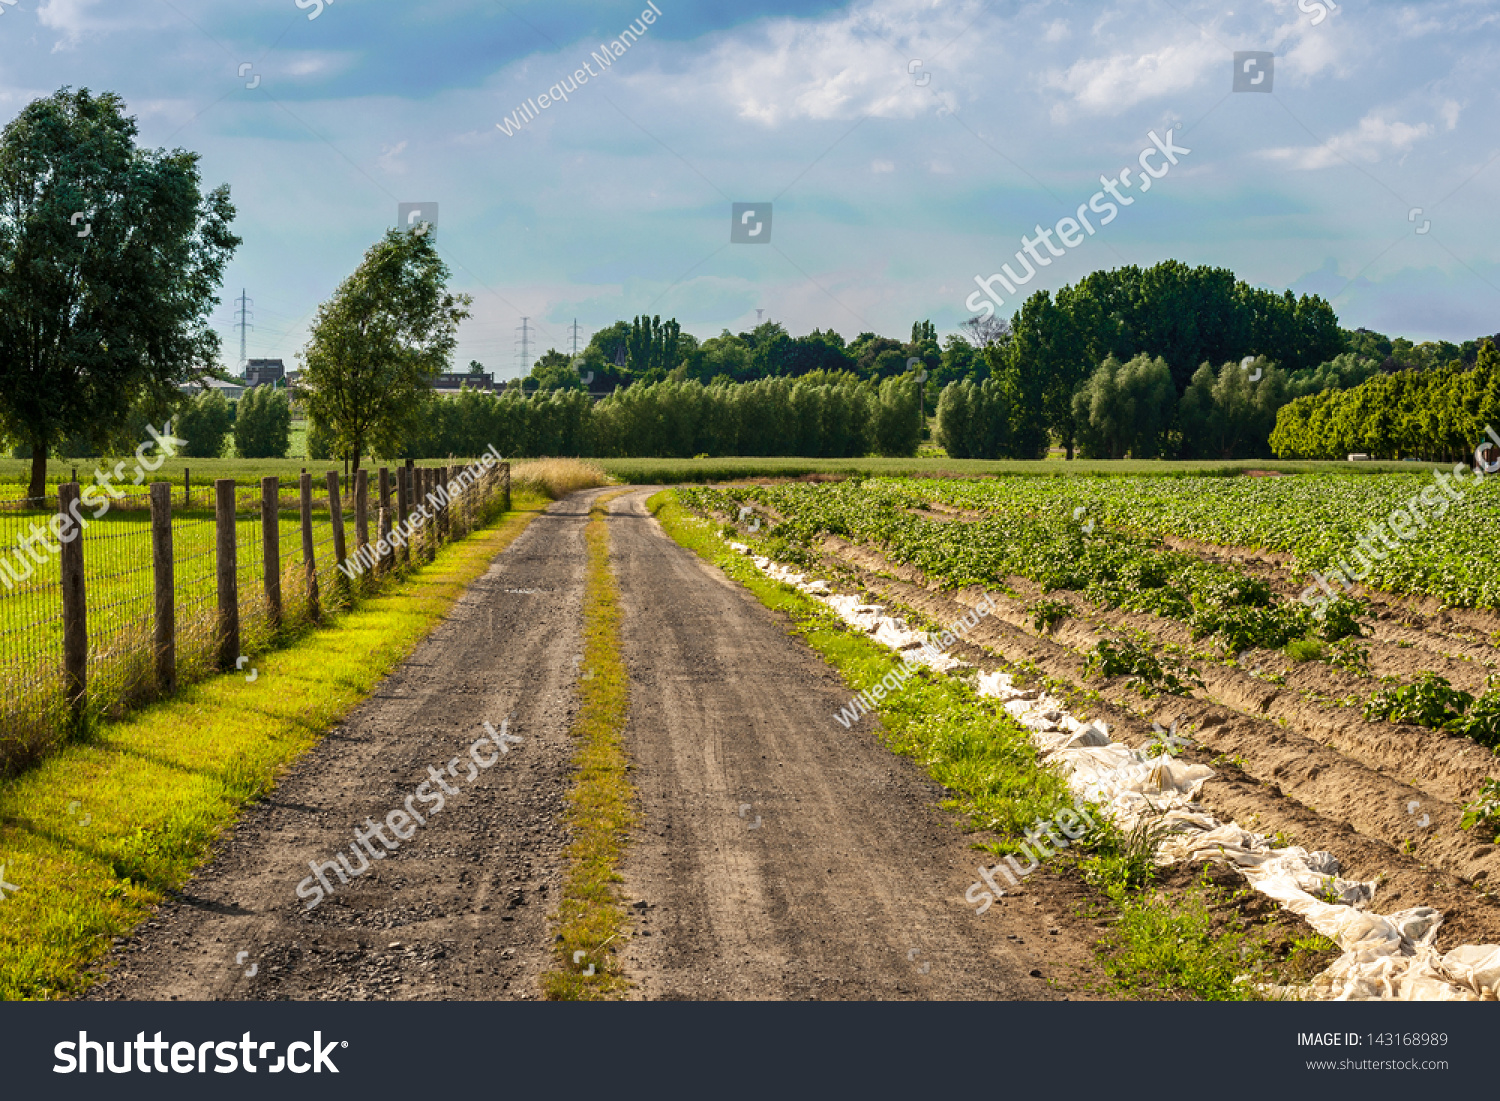 earth road fields countryside - photo #17